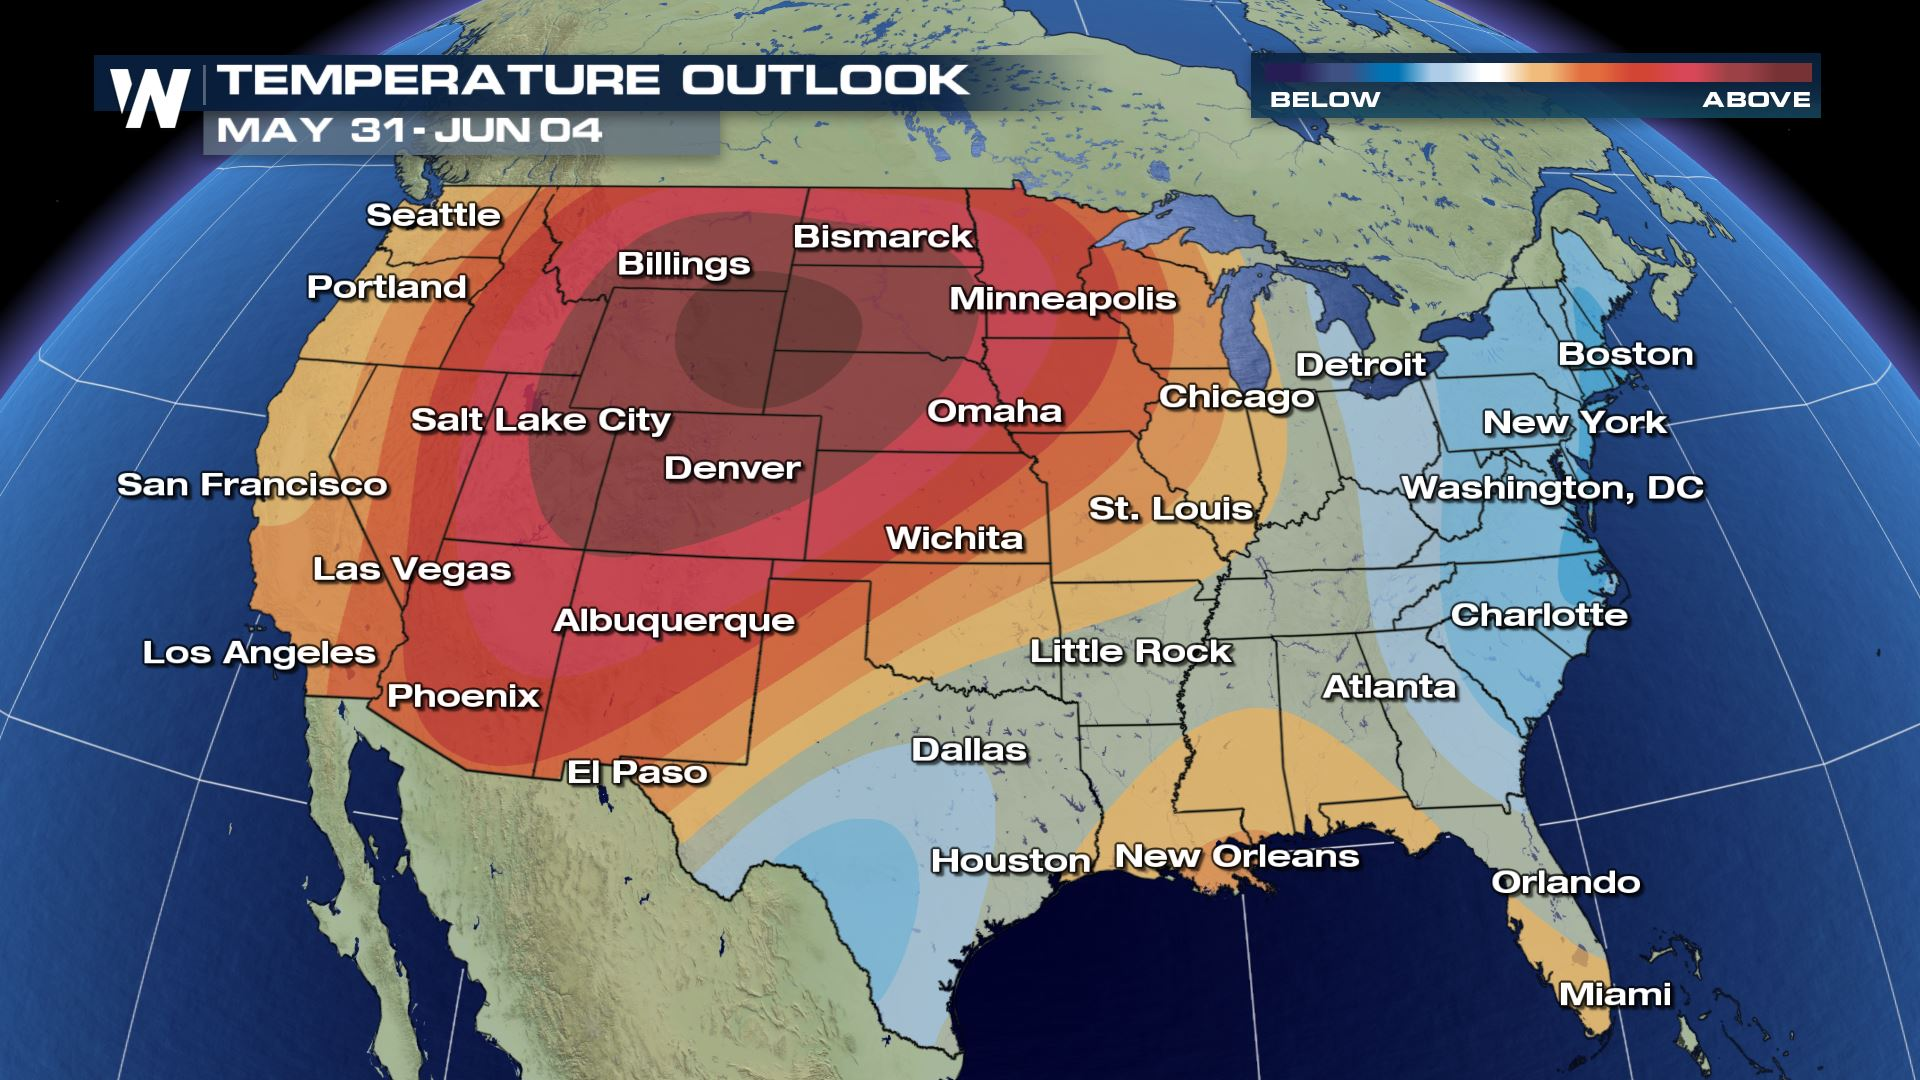 Us Weather Map This Weekend Heat Wave For Much Of U.S. Next Week?   WeatherNation